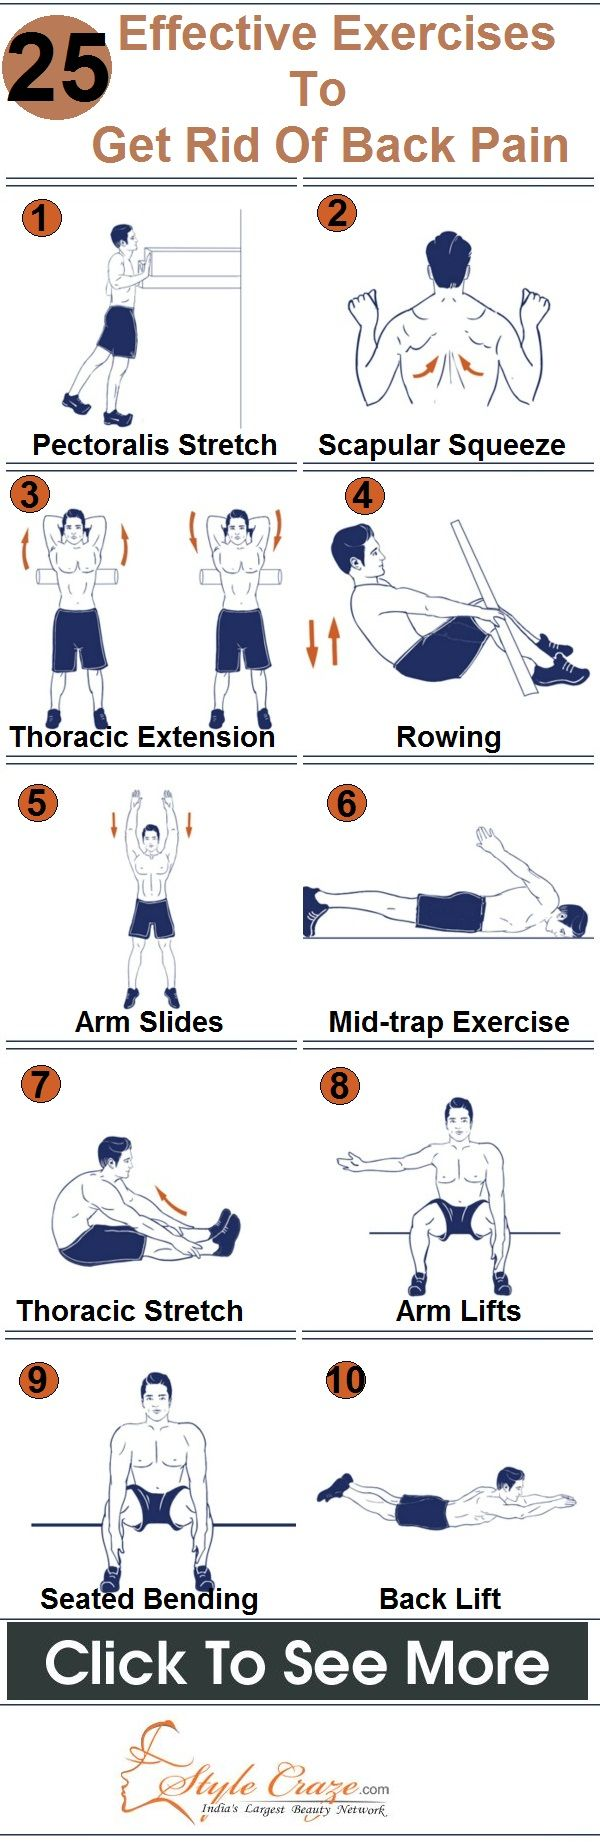 25 Effective Exercises To Get Rid Of Back Pain. Stay healthy my friends. www.selfiesnation.com: Backpain, Stay Healthy, Health Tip, Fitness Healthy, Fitness Exercises, Back Pain Exercise, Effective Exercises, Exercises Fitnesstips, Workout